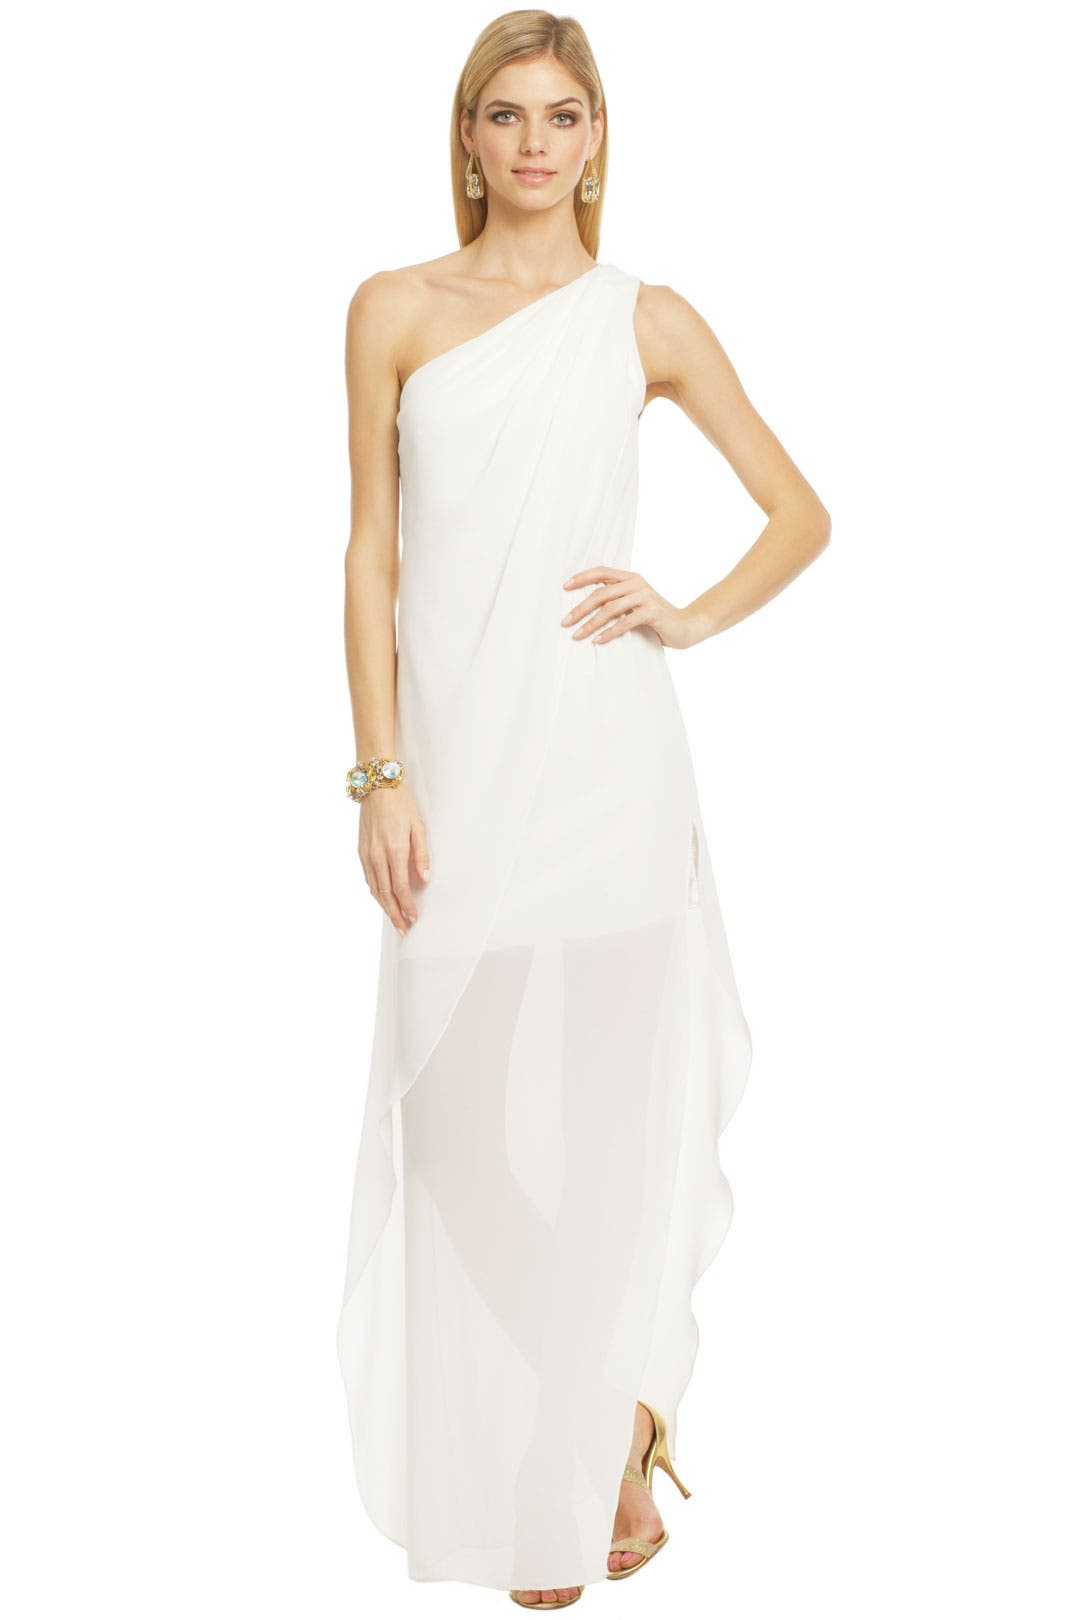 White Out Dress by Mark & James by Badgley Mischka